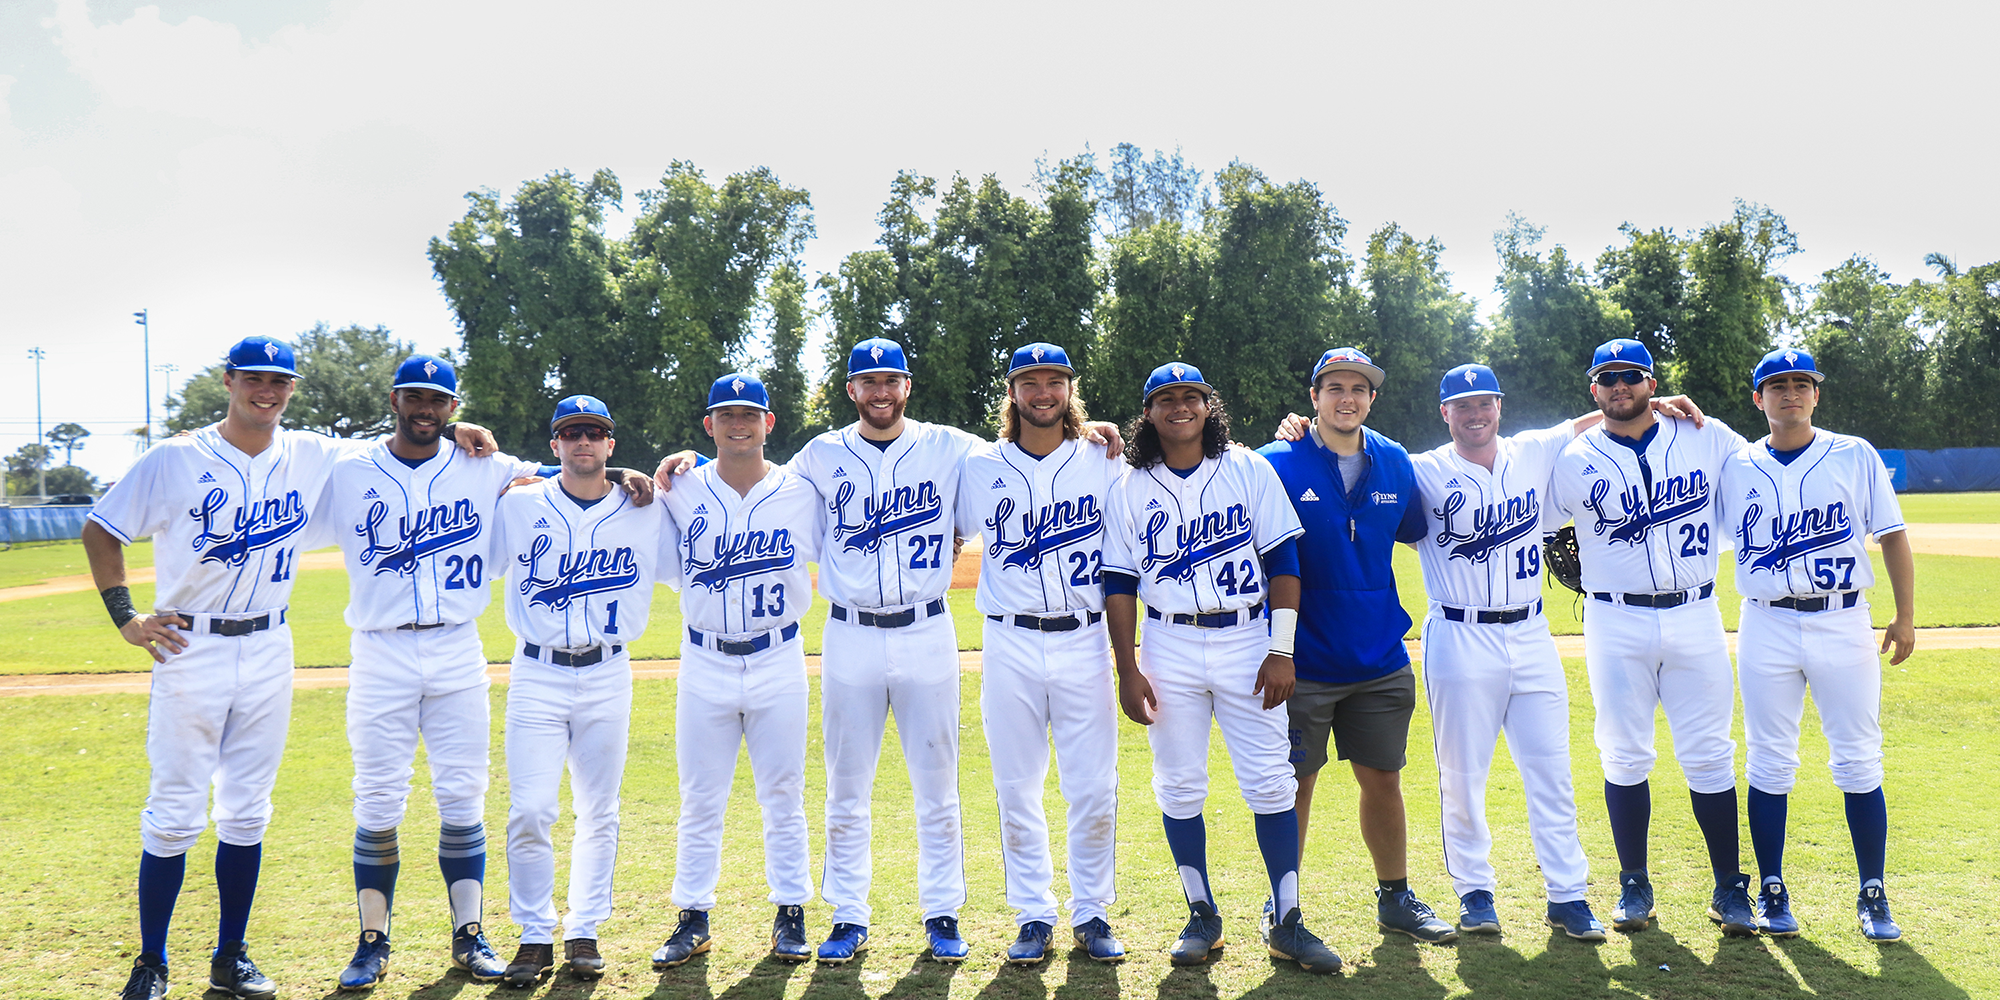 Danza, Martinez Make for Memorable Senior Day for Lynn Baseball